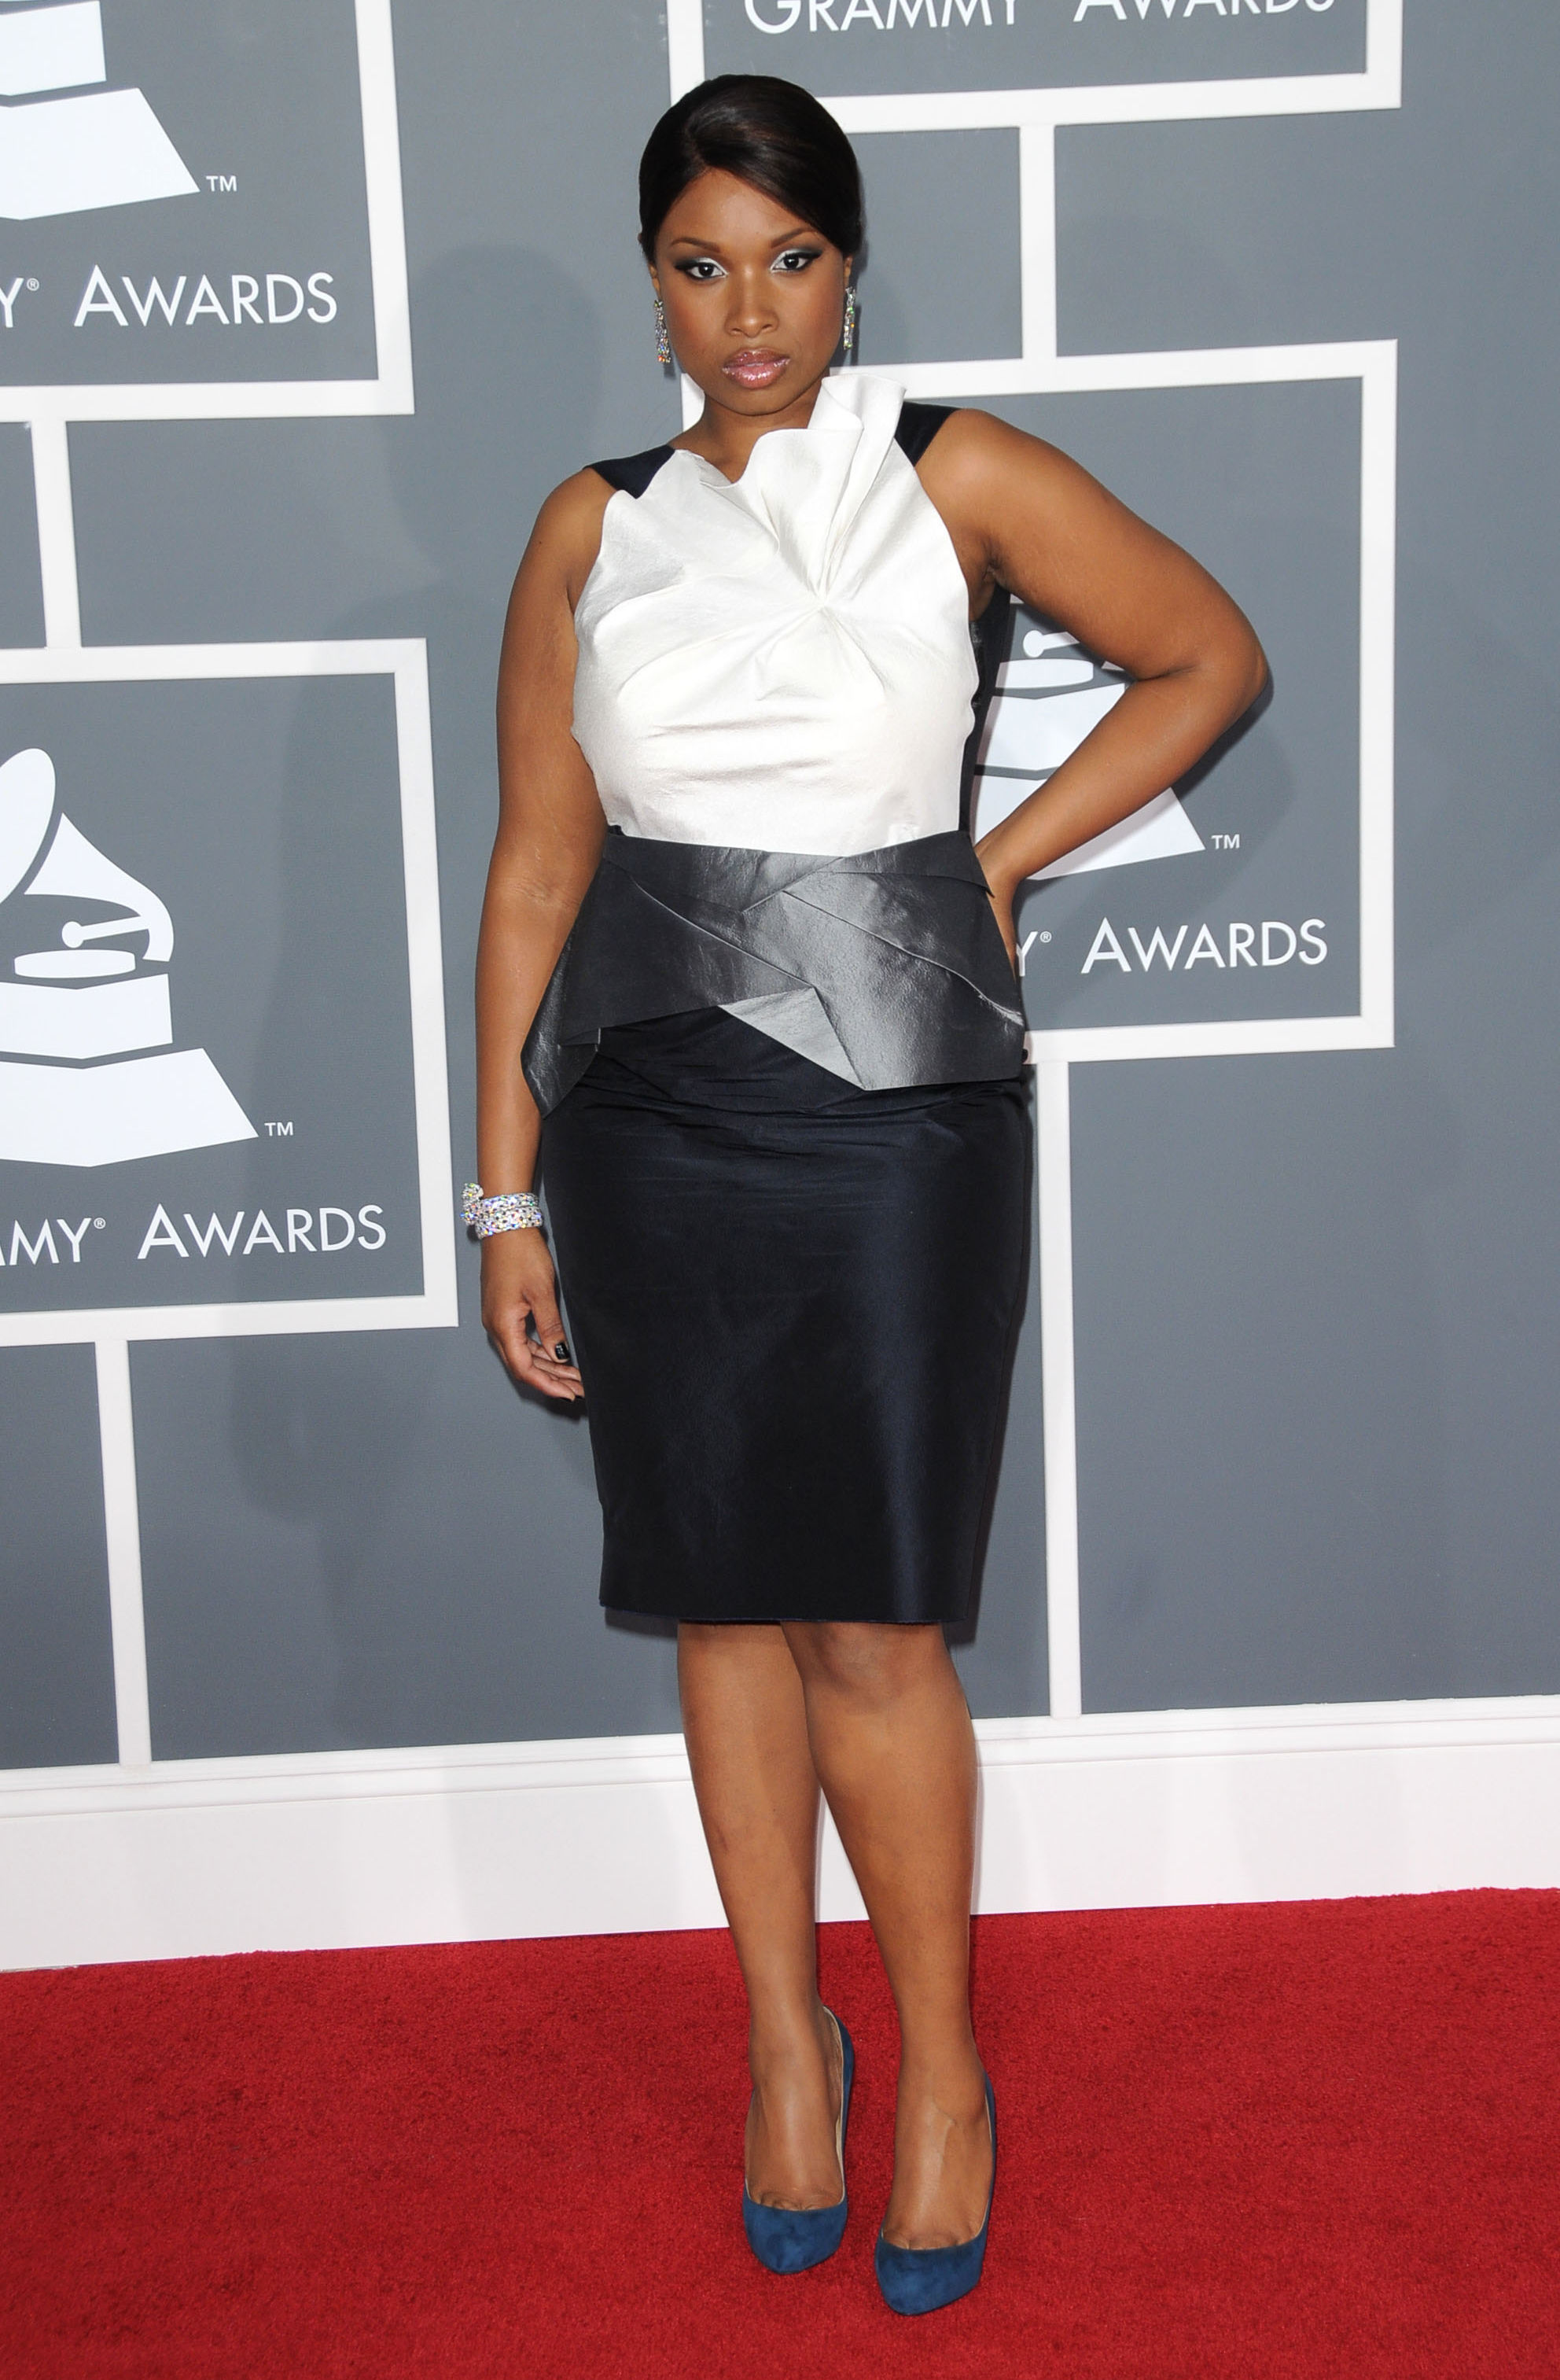 Jennifer Hudson arrives at the 51st Annual Grammy Awards at the Staples Center in Los Angeles on Feb. 8, 2009.